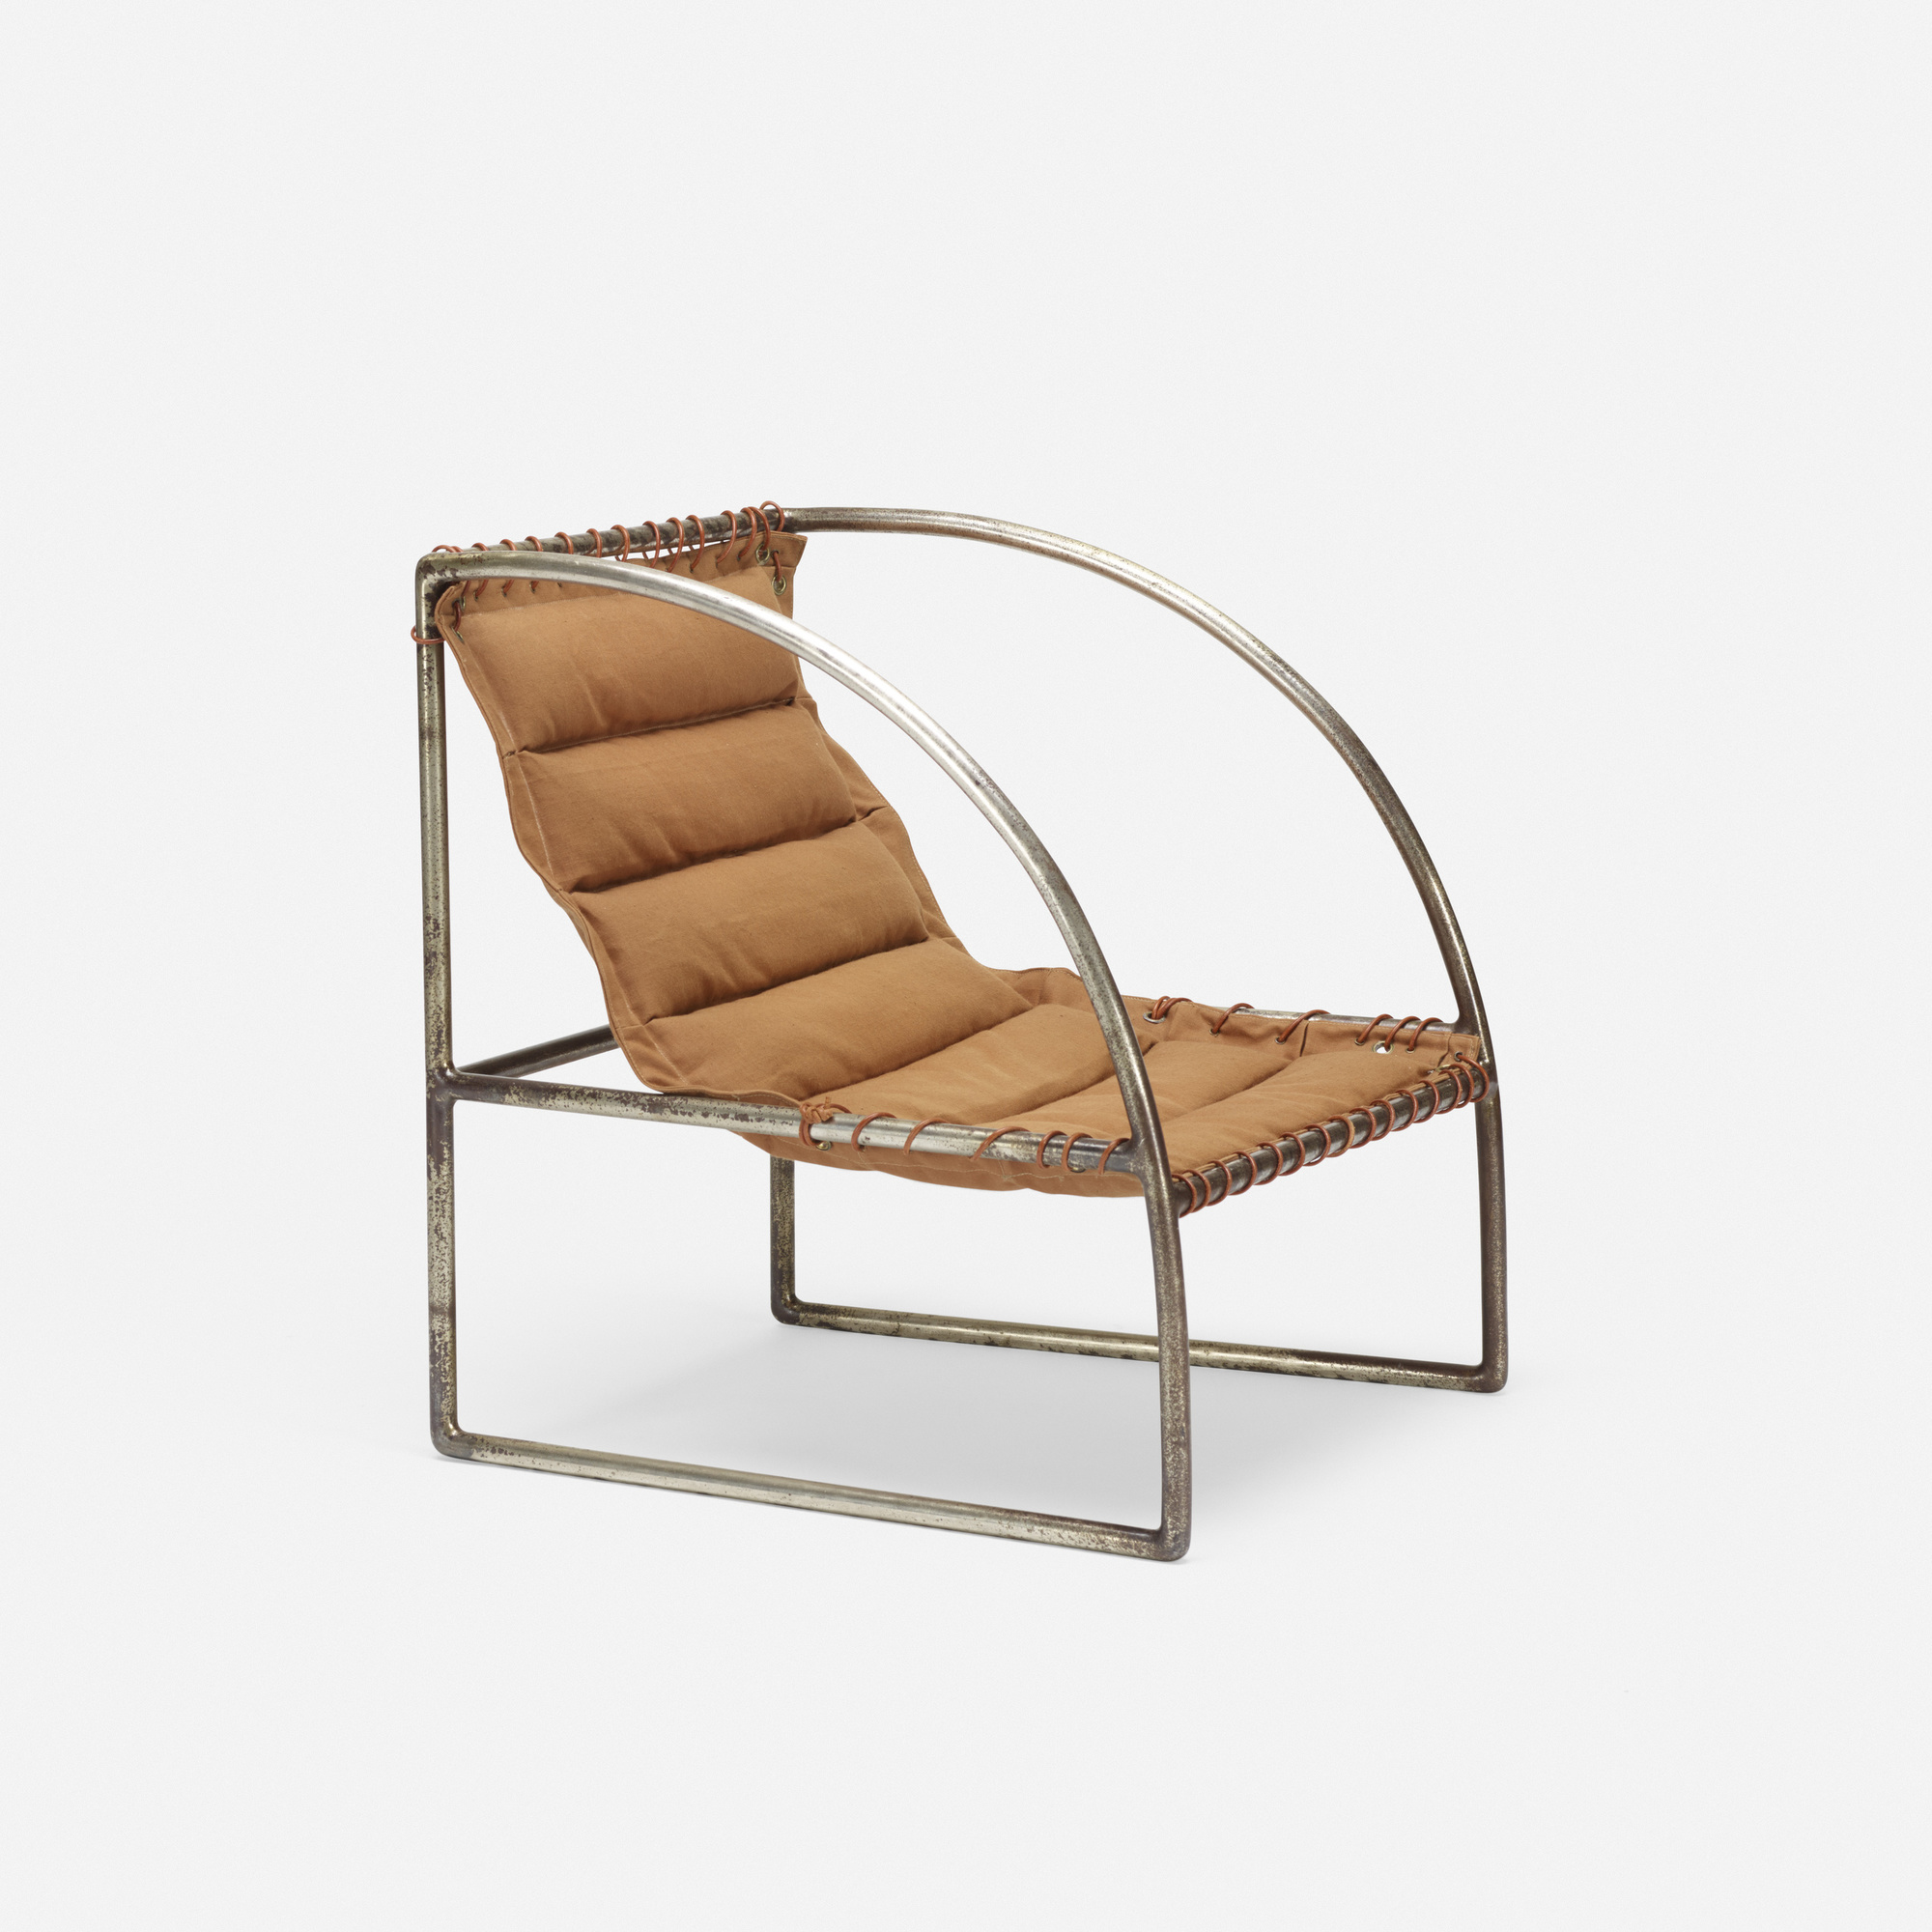 427: French / lounge chair (1 of 3)